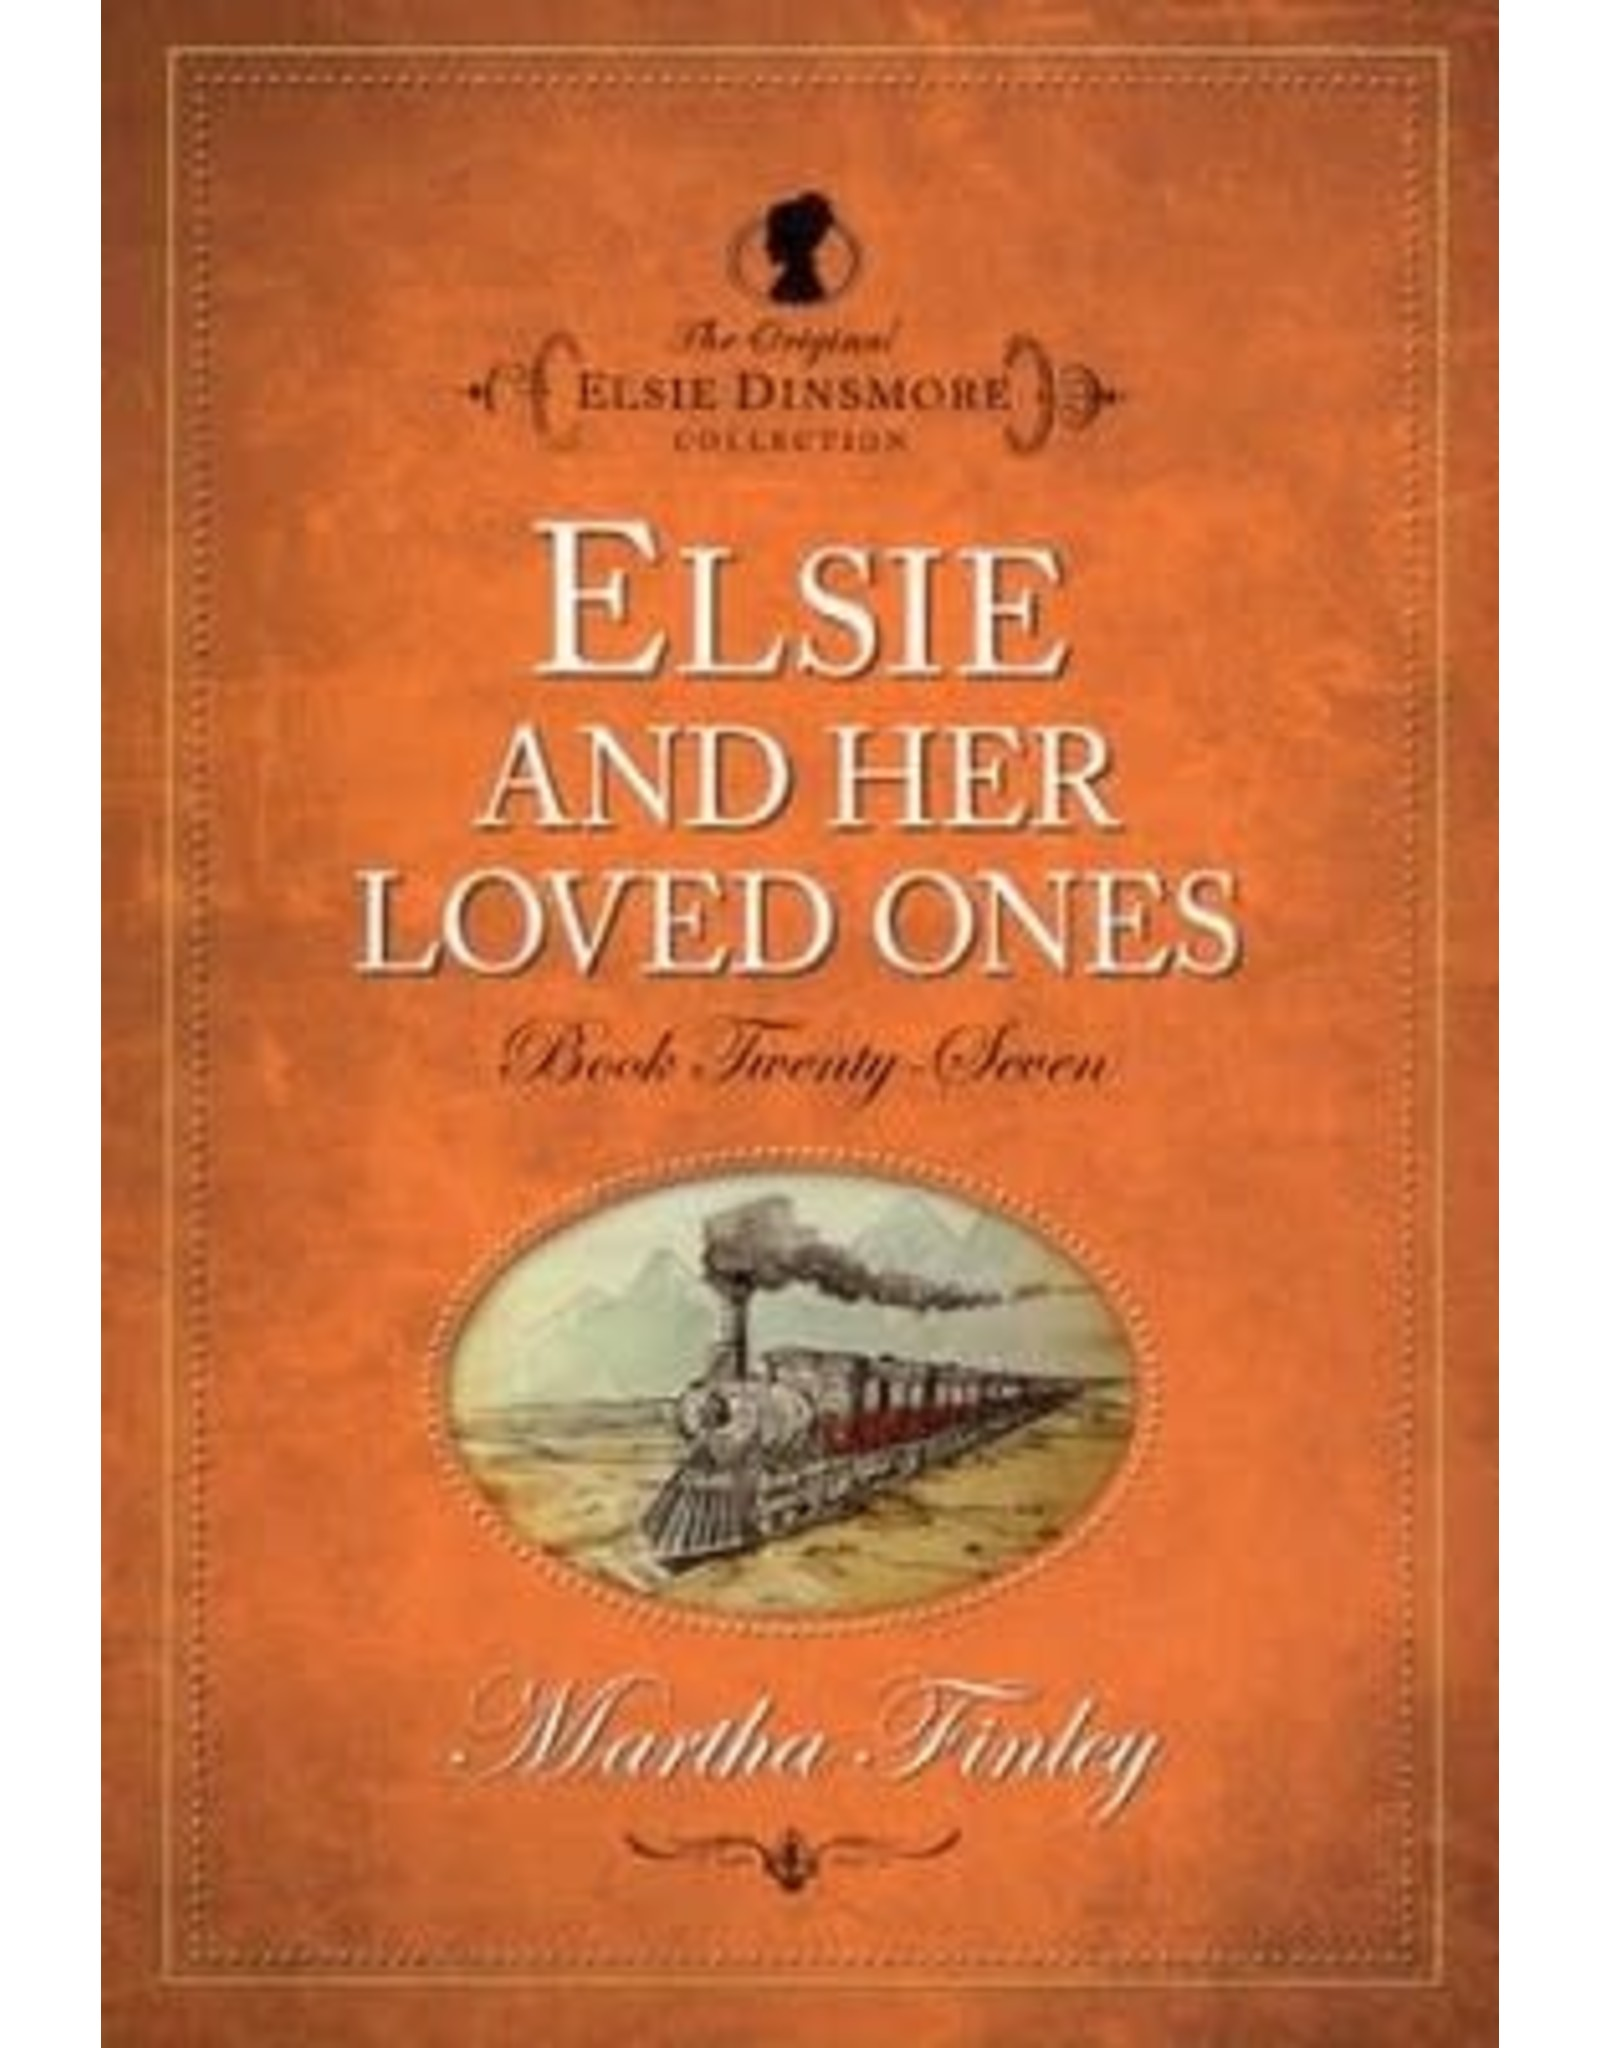 Martha Finley Elsie and her Loved Ones